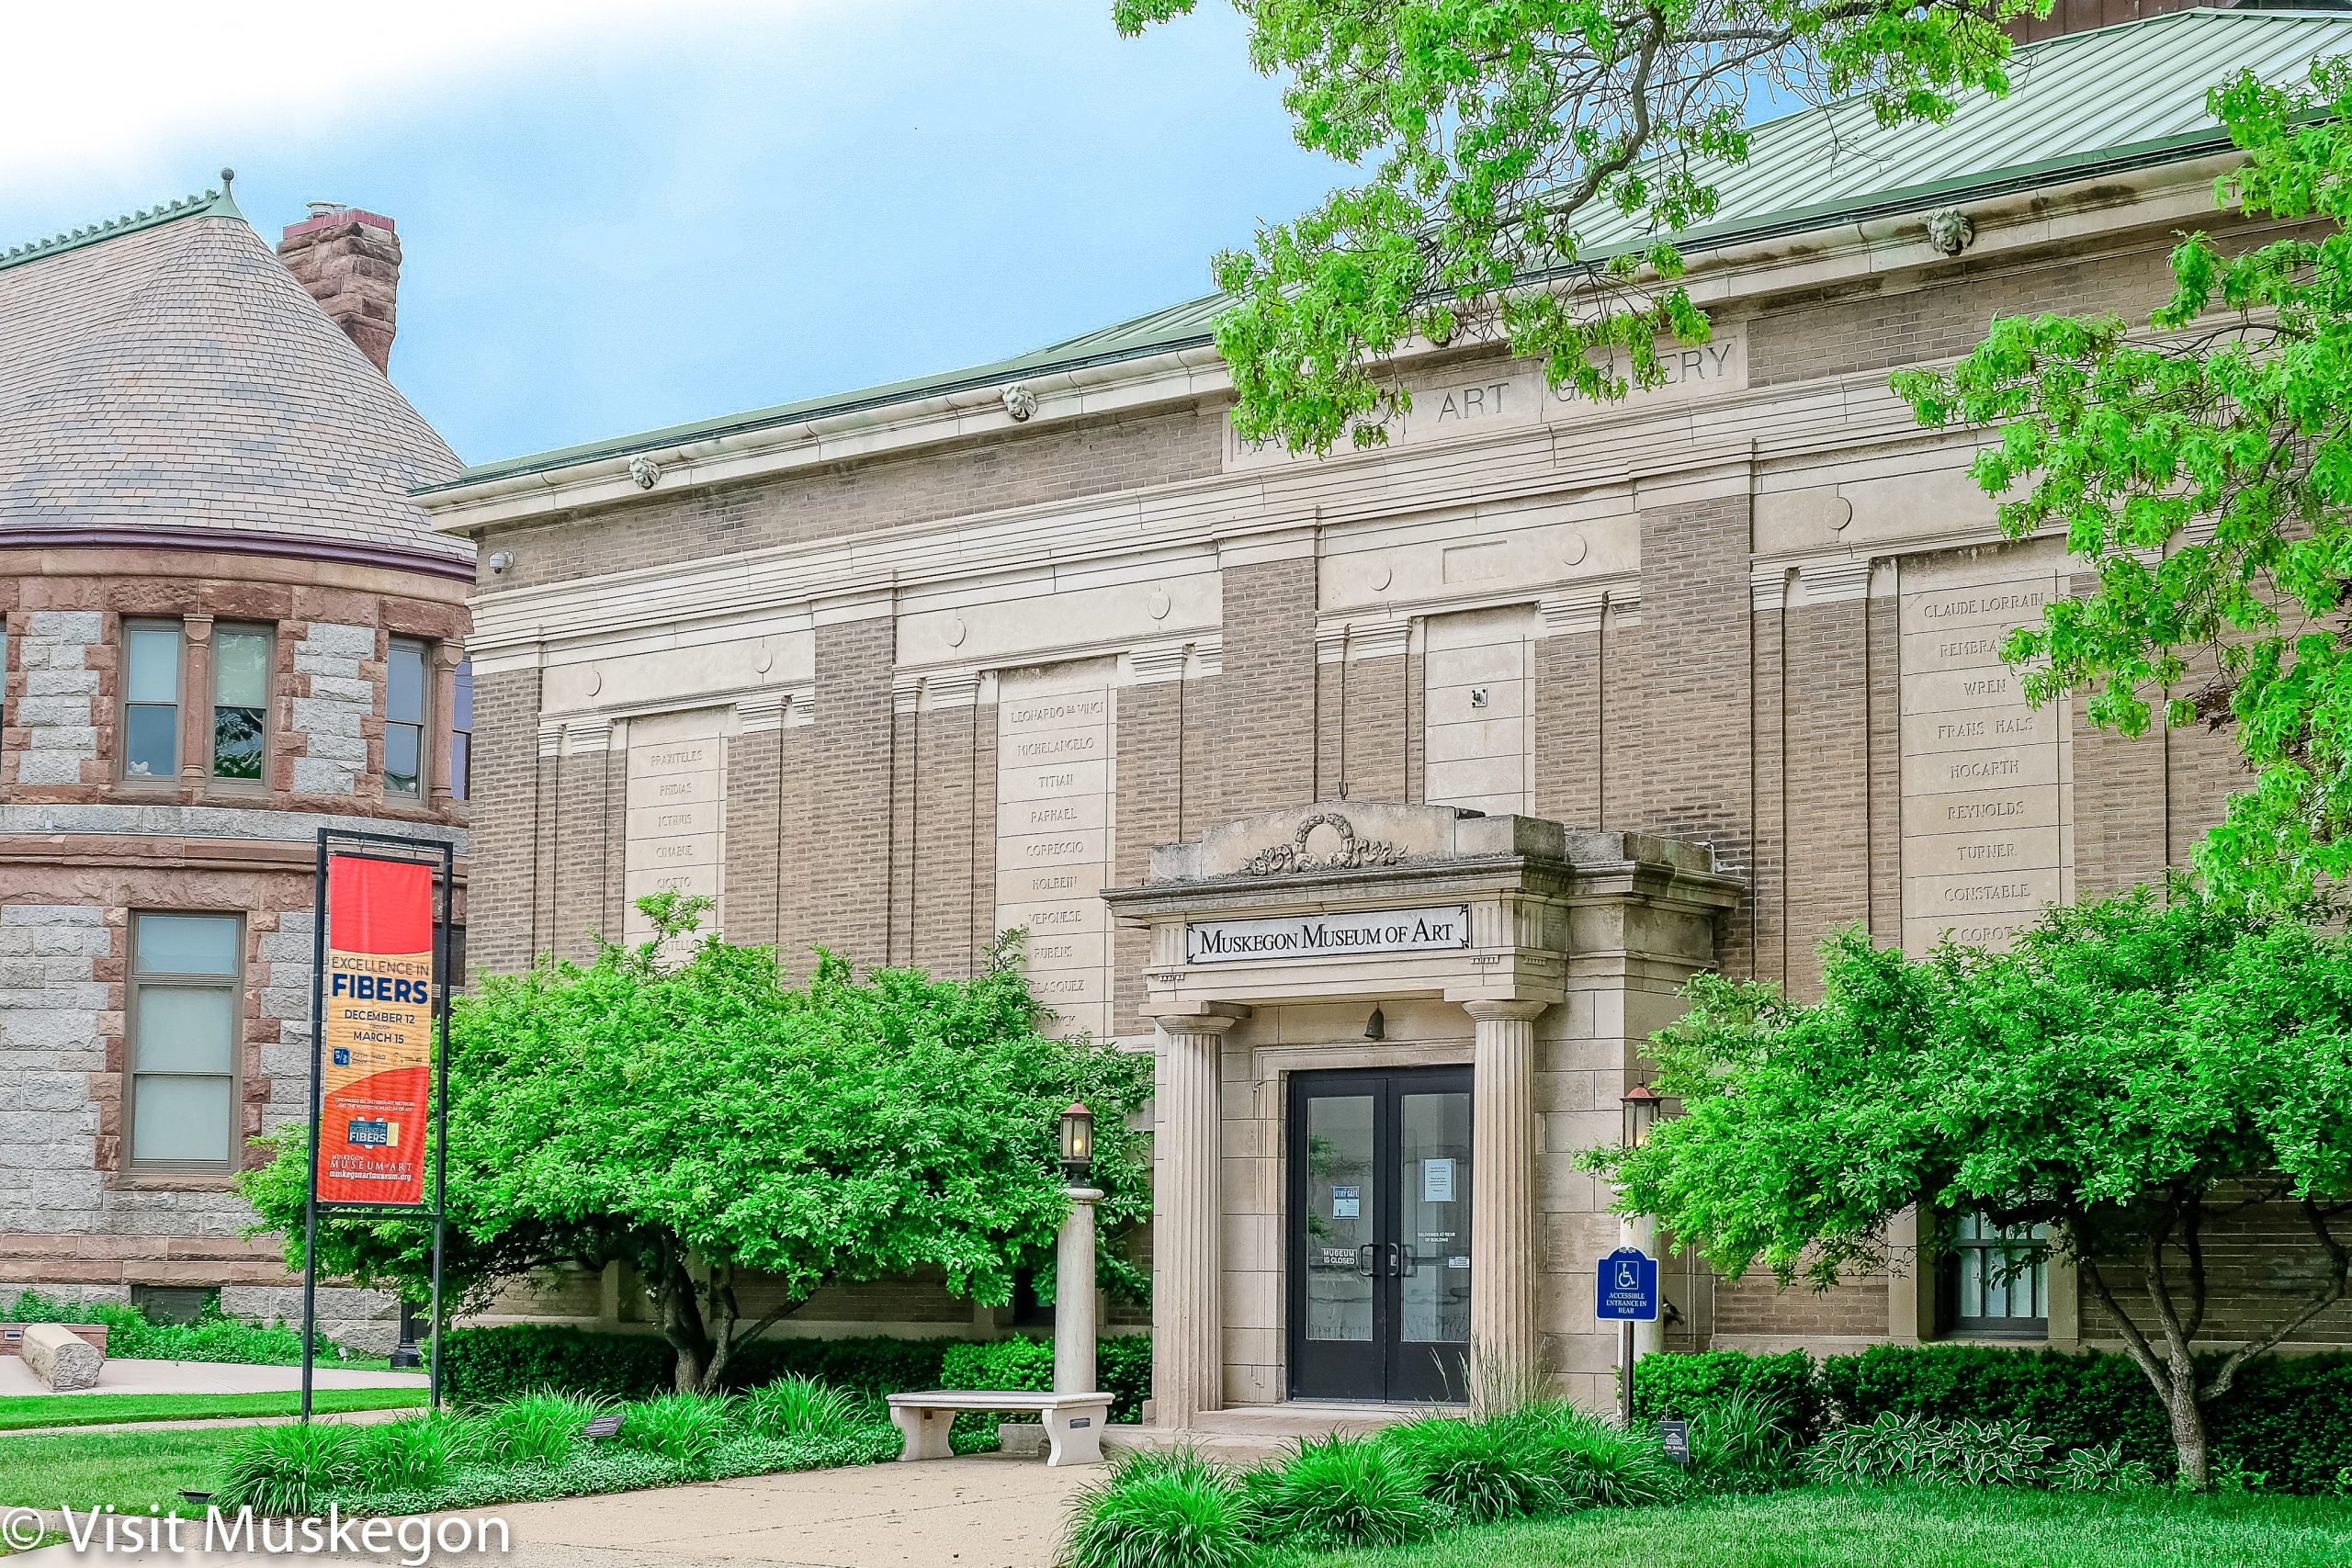 muskegon museum of art entrance; Classical Revival structure with columned portico. a bright sign sits in front with green trees.